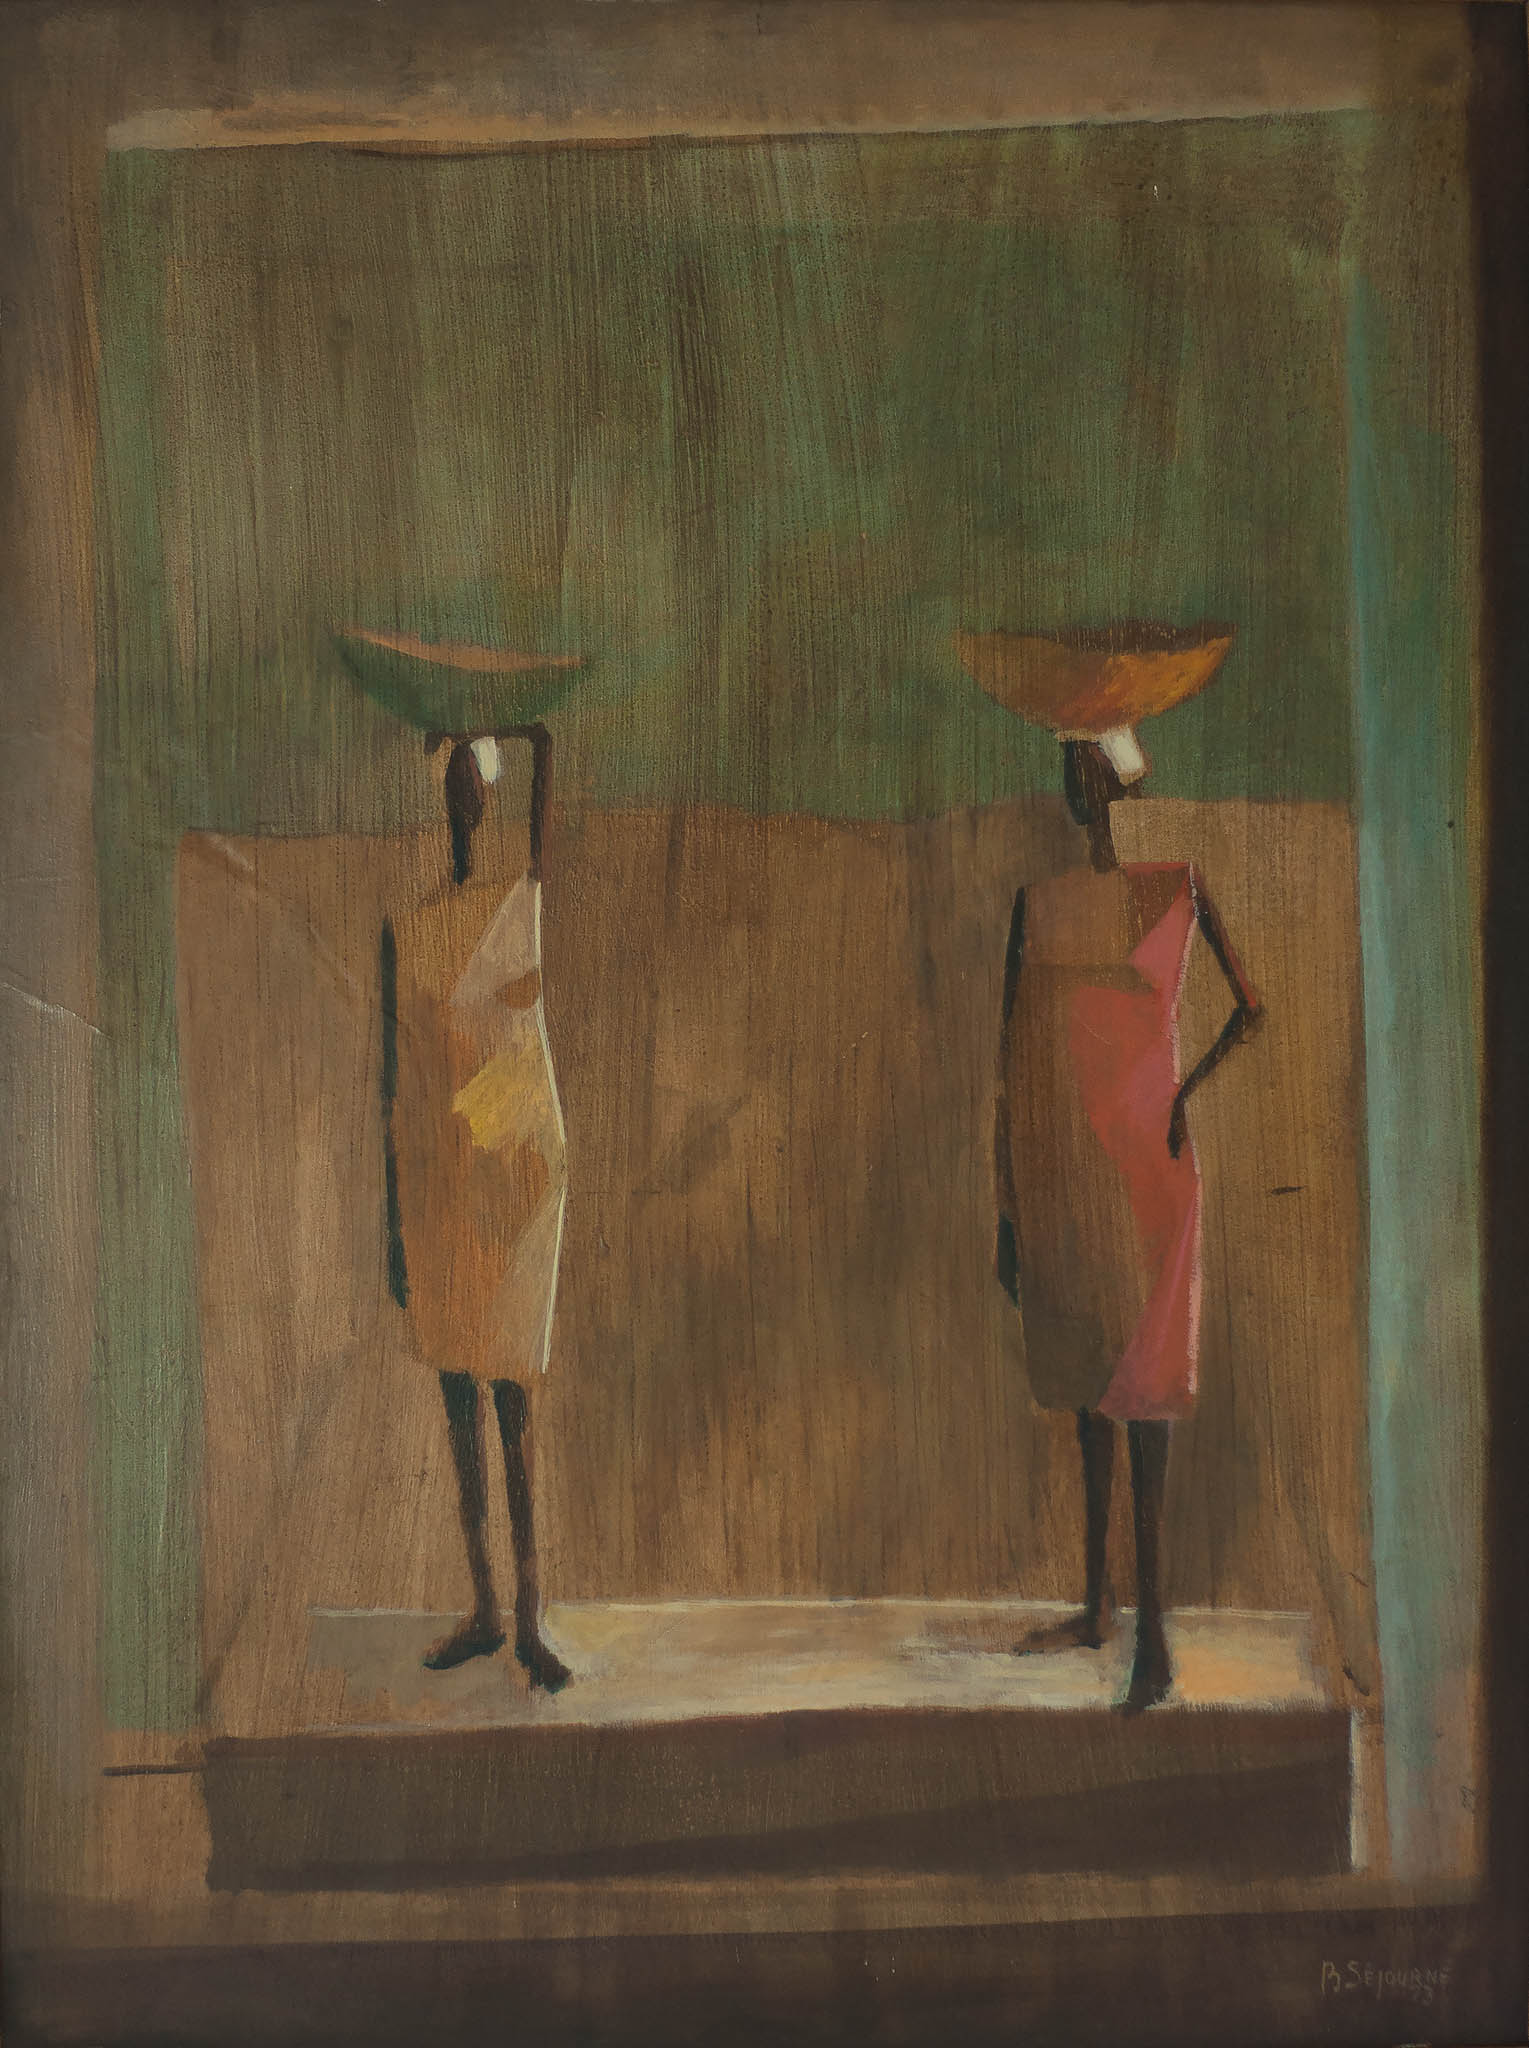 Two Women with Baskets on heads, 1973